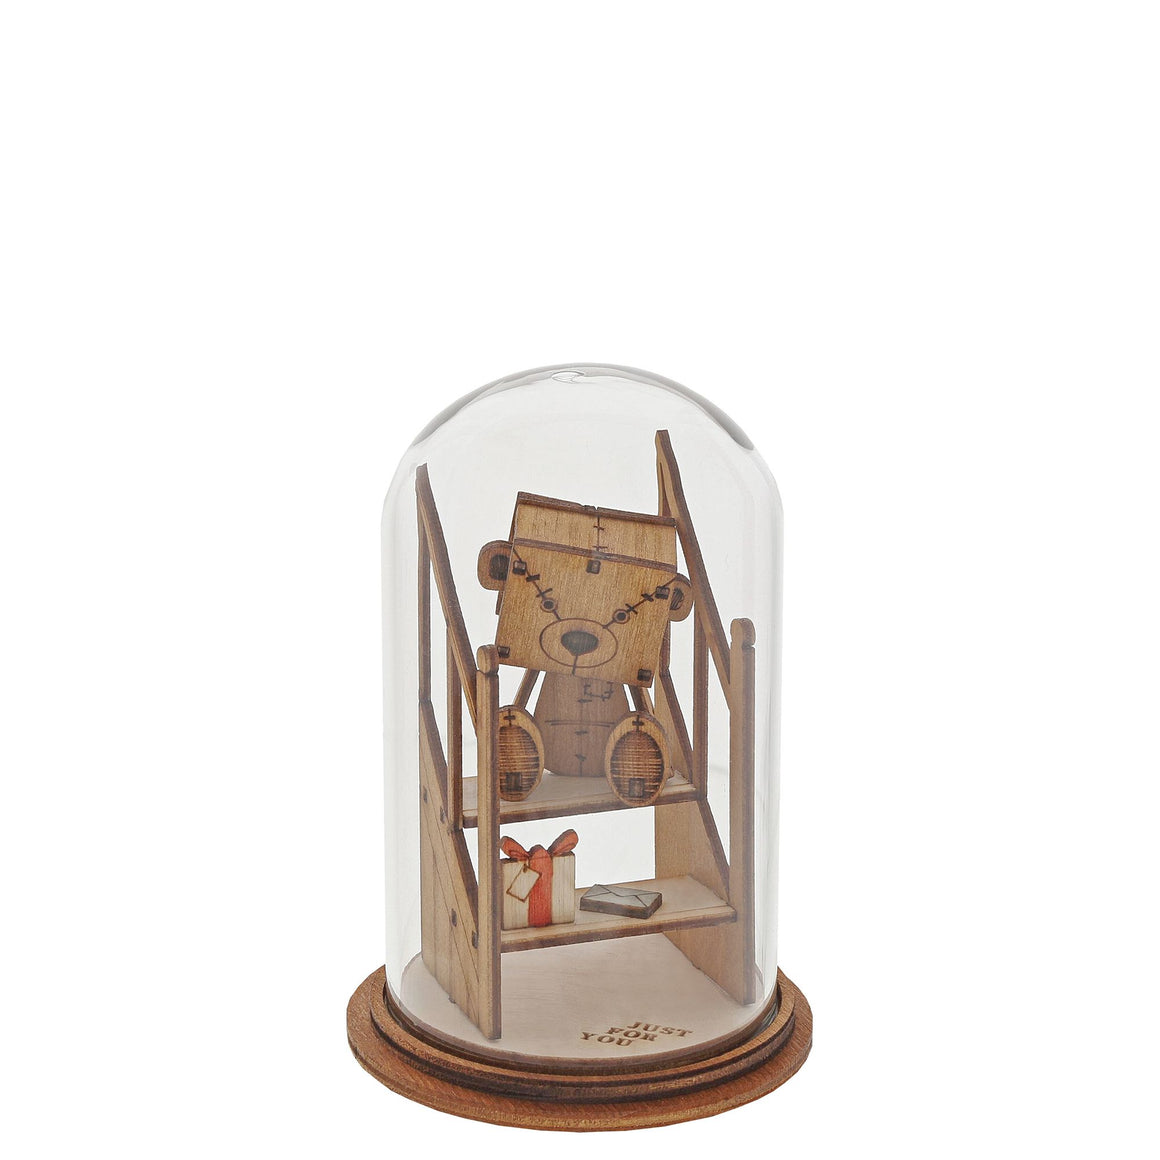 Birthday Just For You Figurine - Kloche by Millbrook Gifts